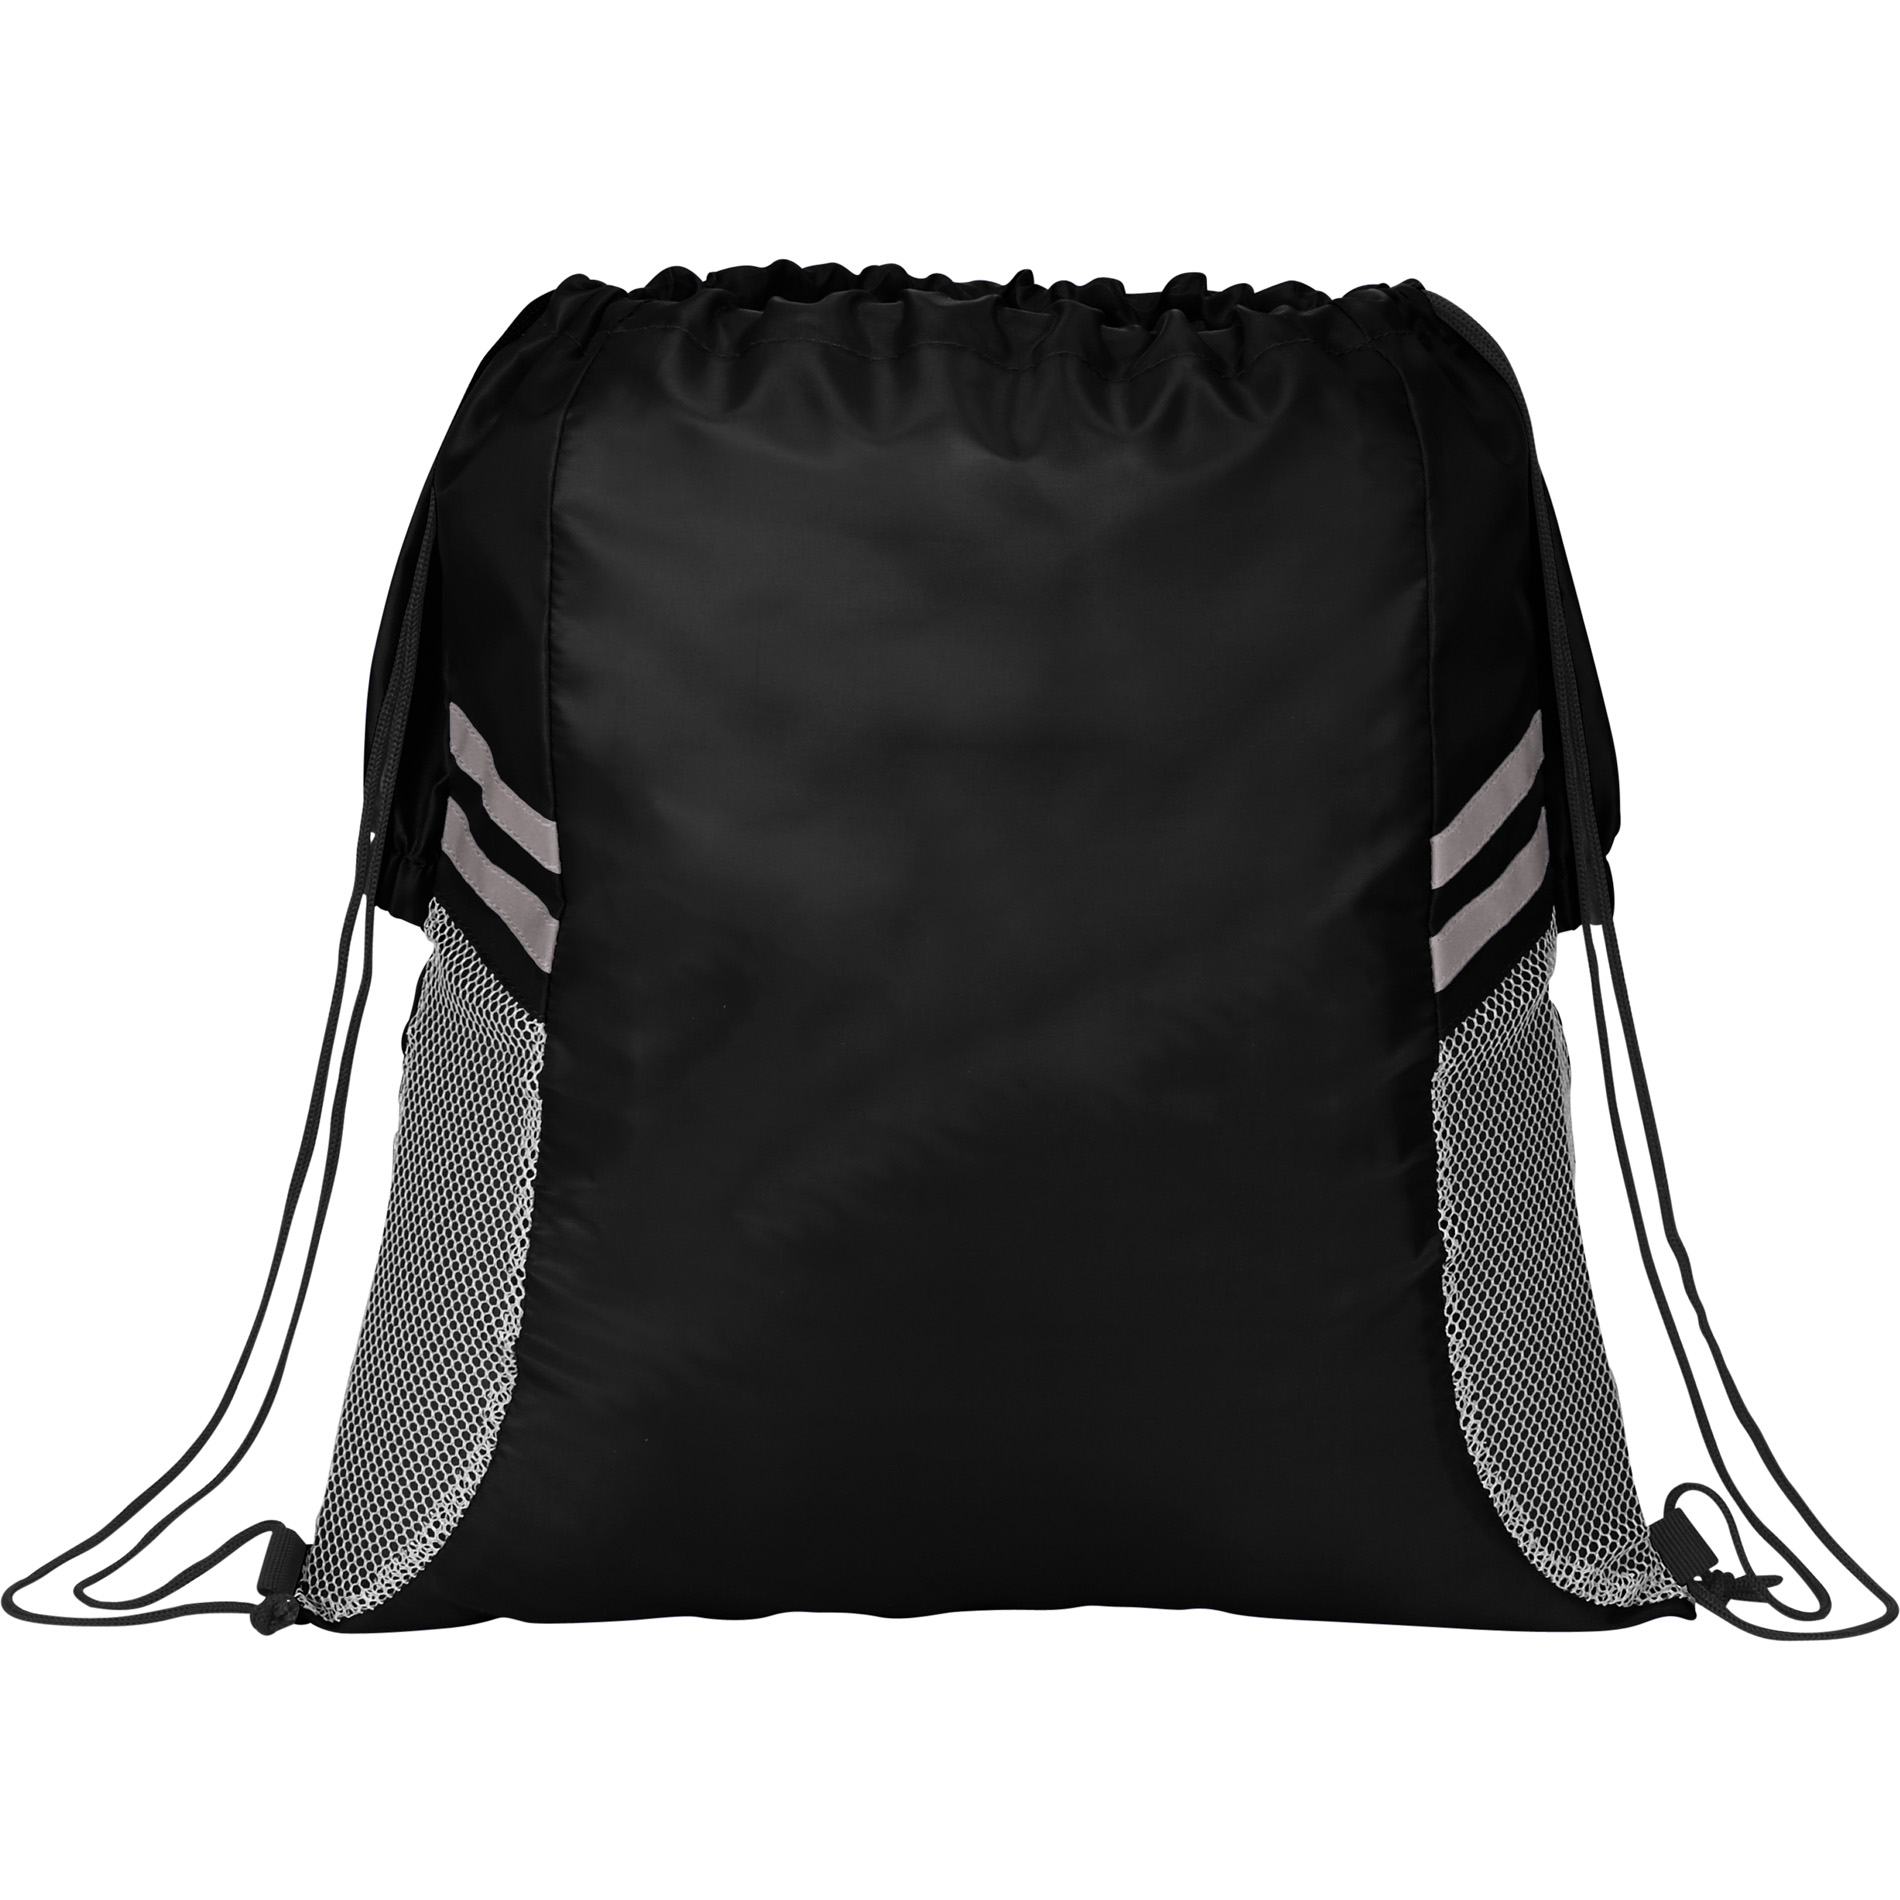 BackSac 3005-34 - Sporty Drawstring Bag